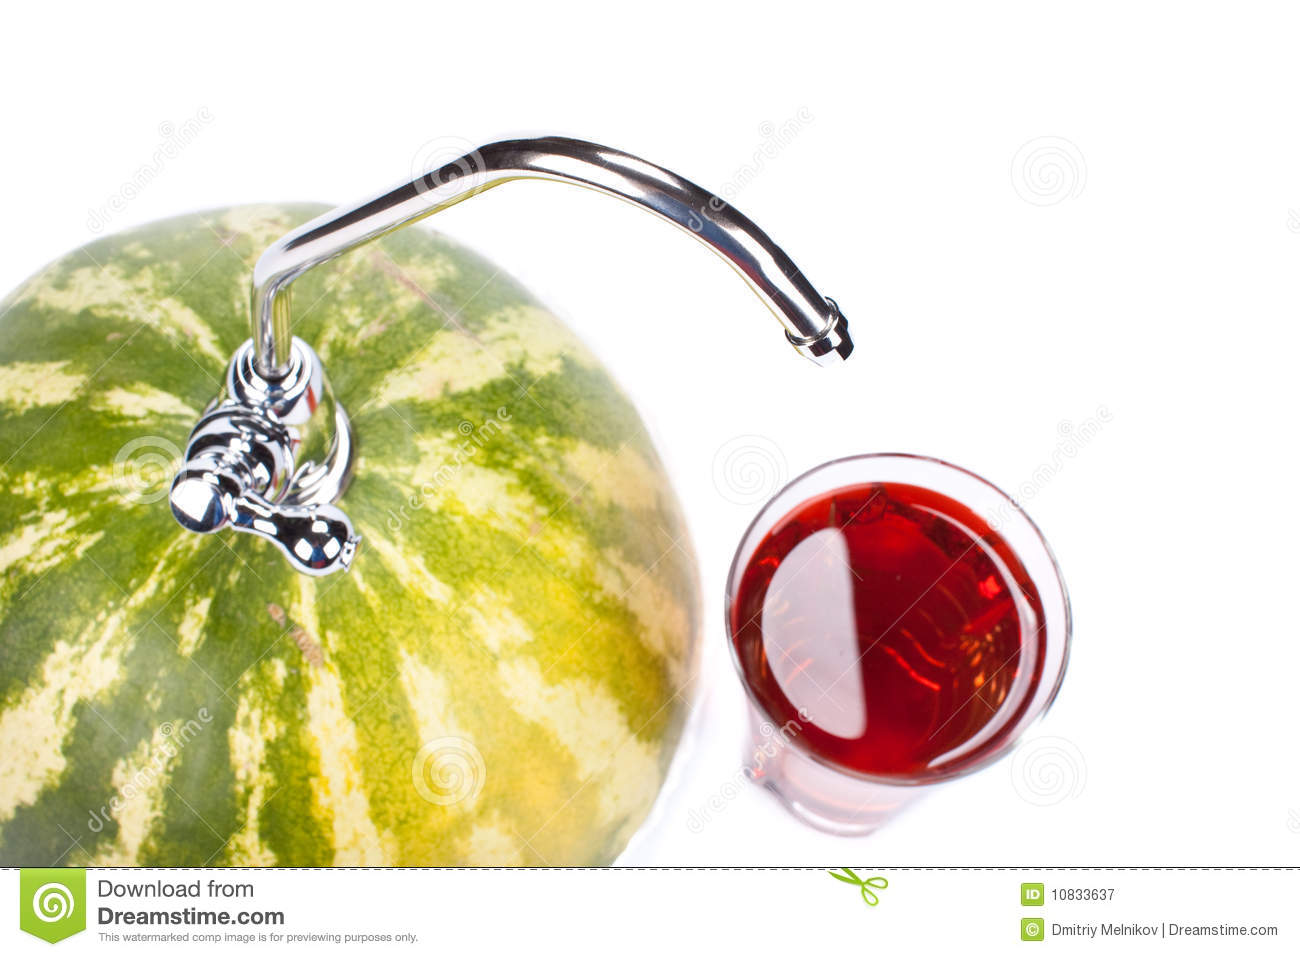 Watermelon with faucet stock image. Image of drink, food - 10833637